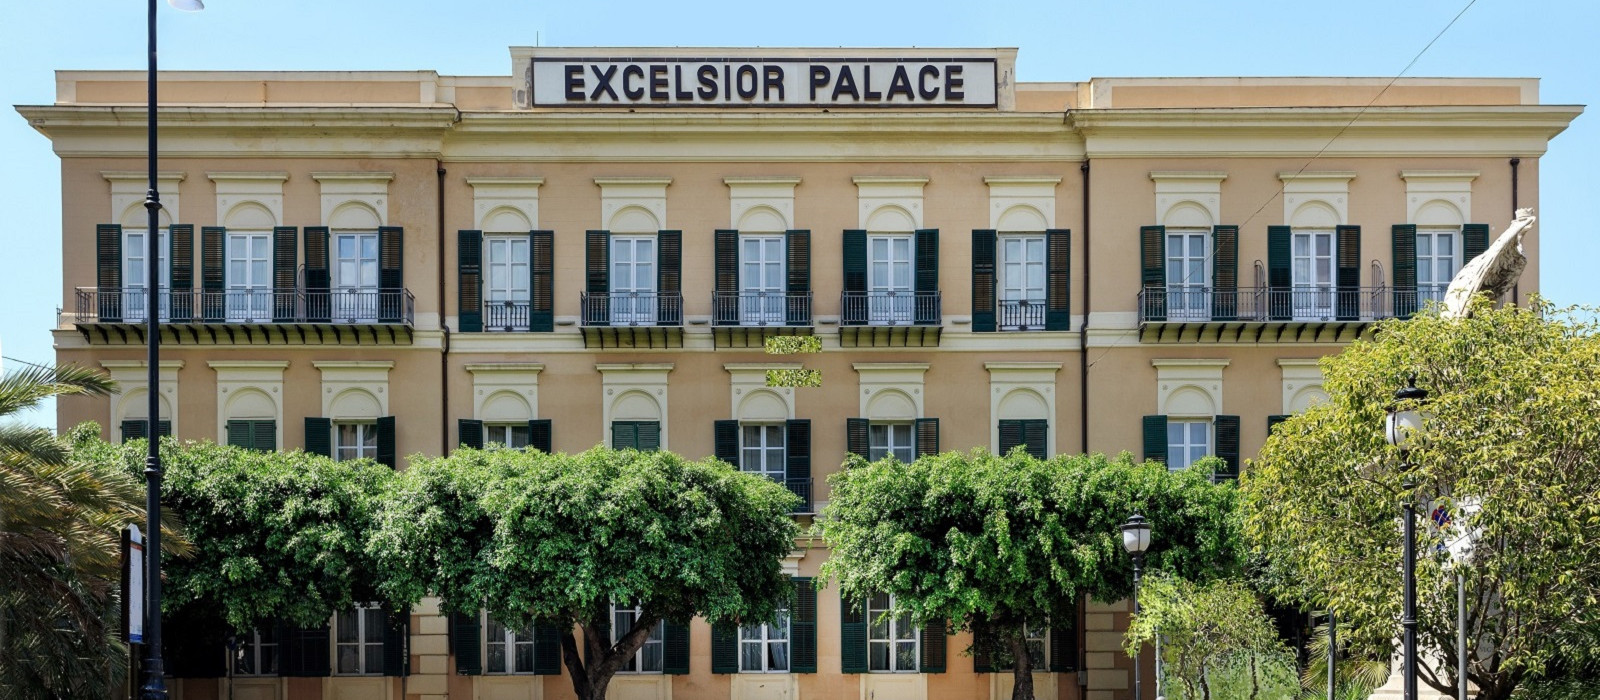 Hotel Excelsior Palace Palermo Italy